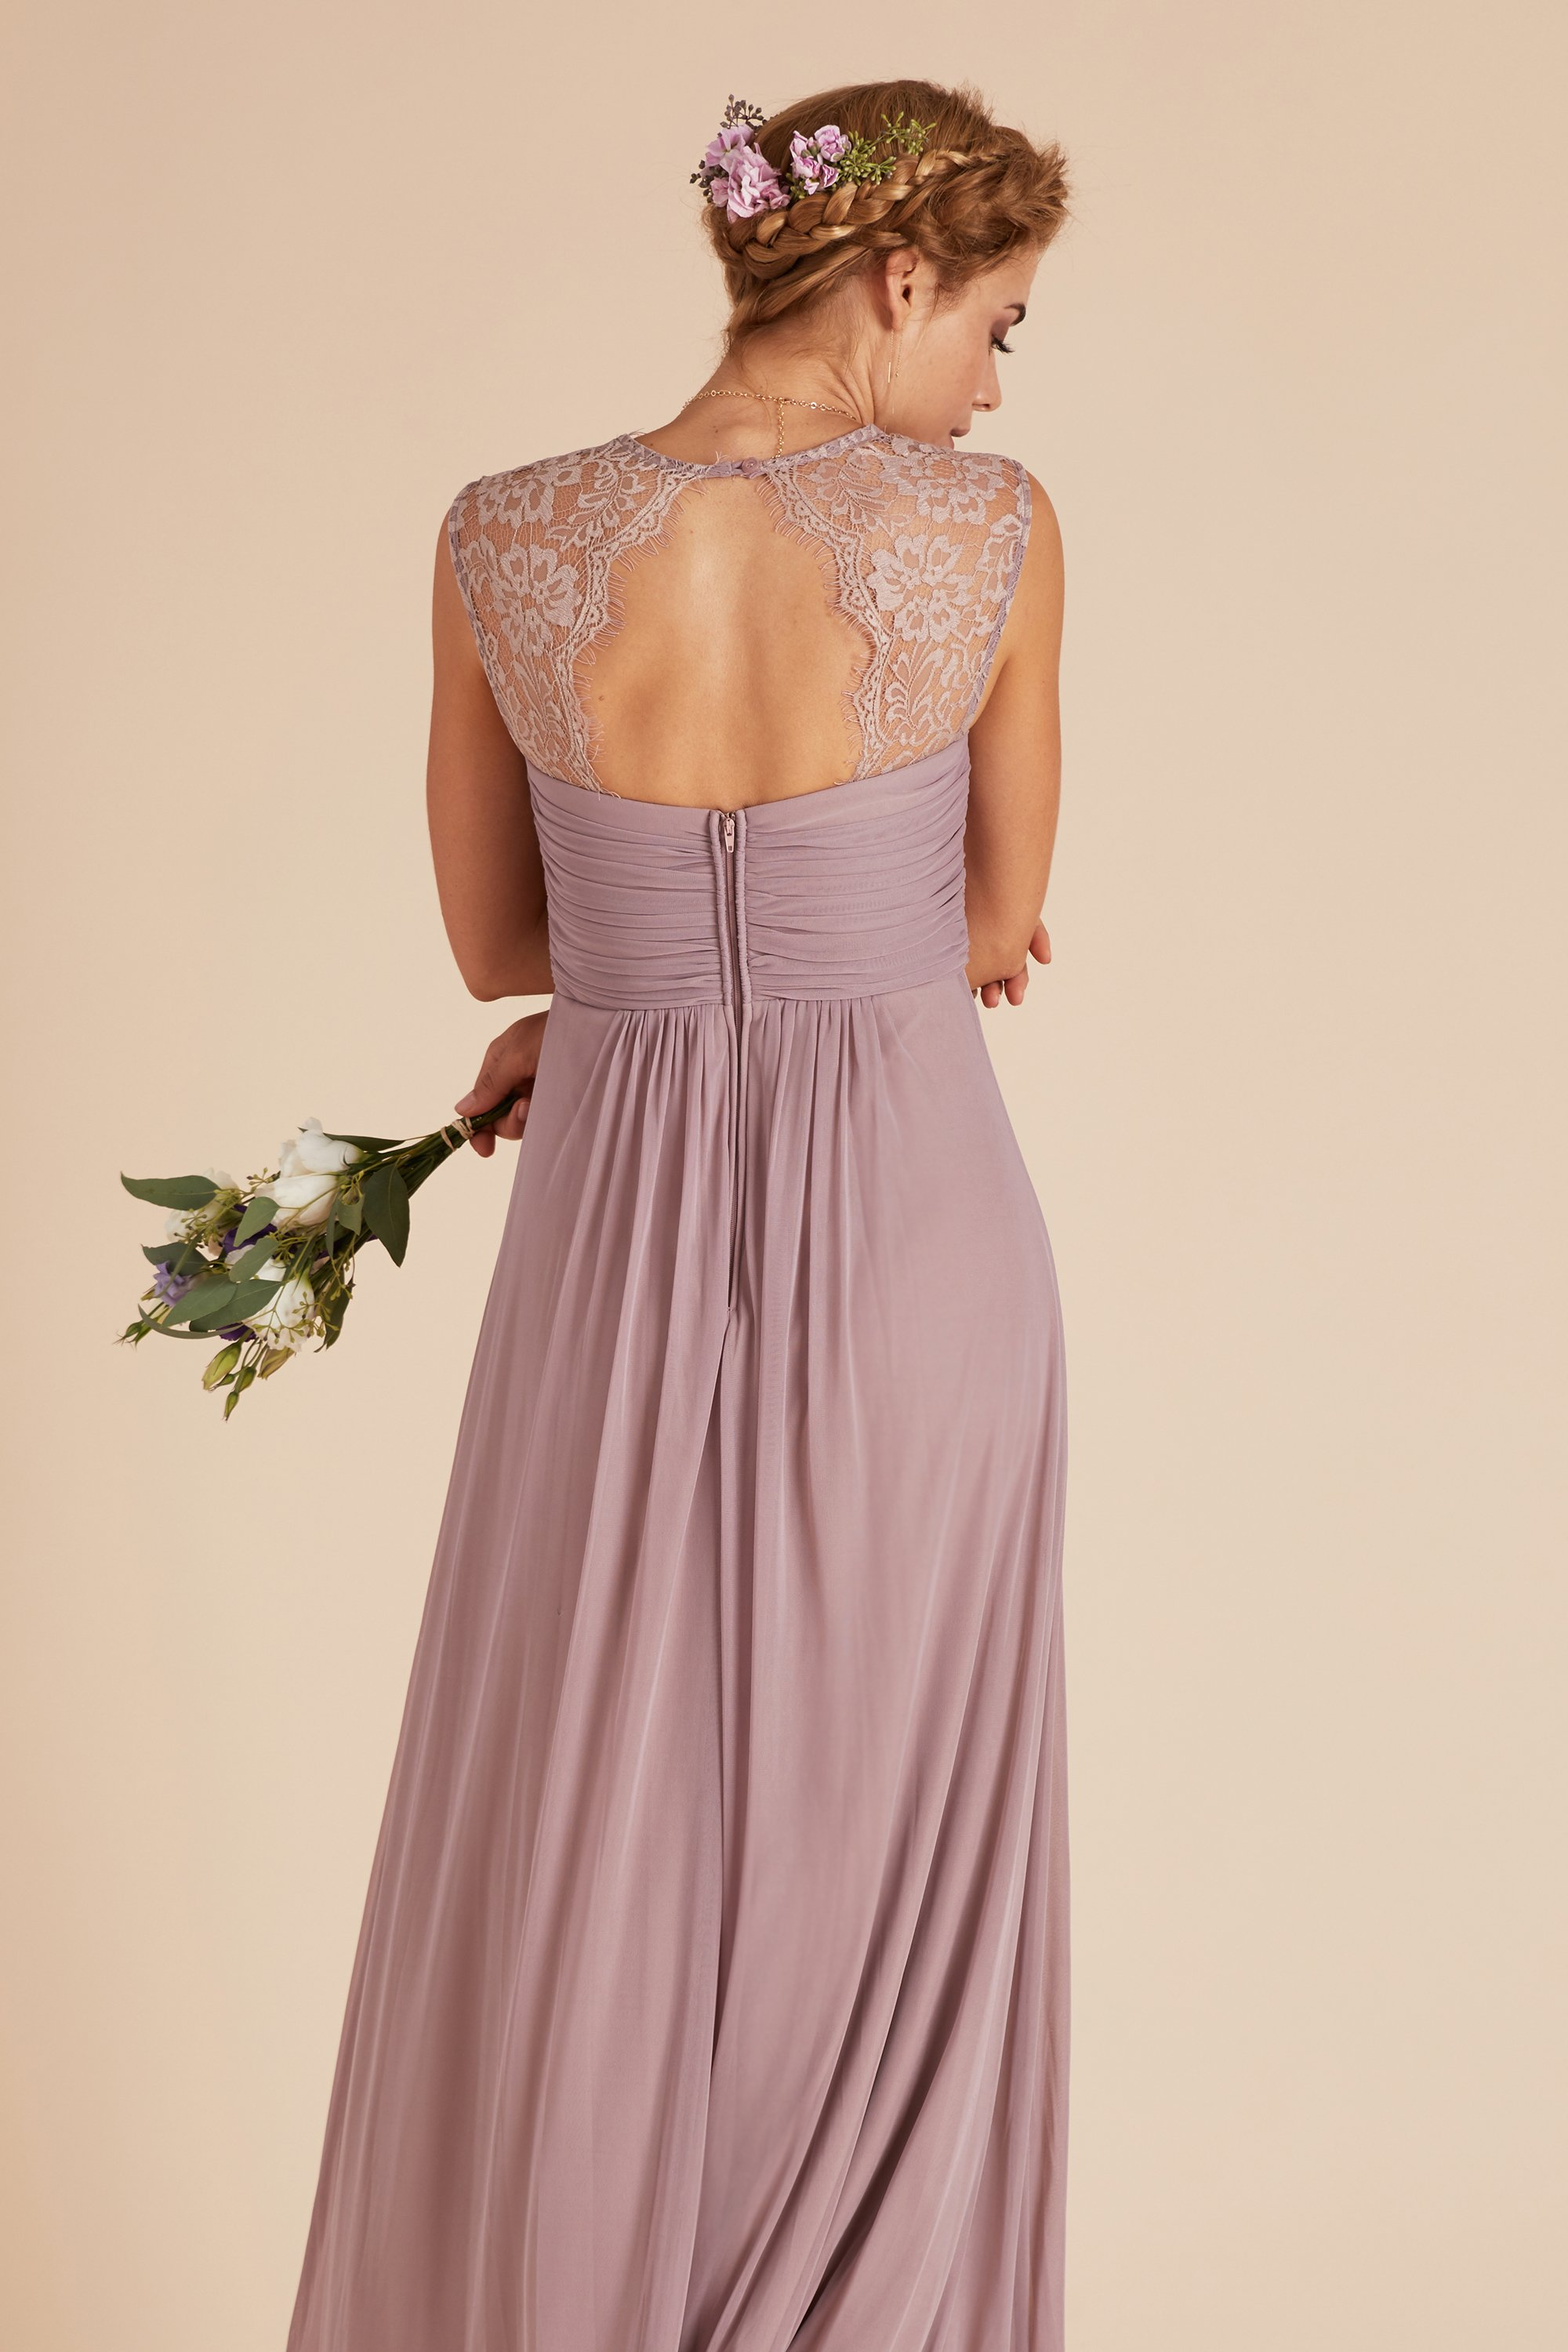 d6625b2e783 Mary bridesmaid dress by Birdy Grey in Mauve. Vintage style lace empire  waist gown under  100.